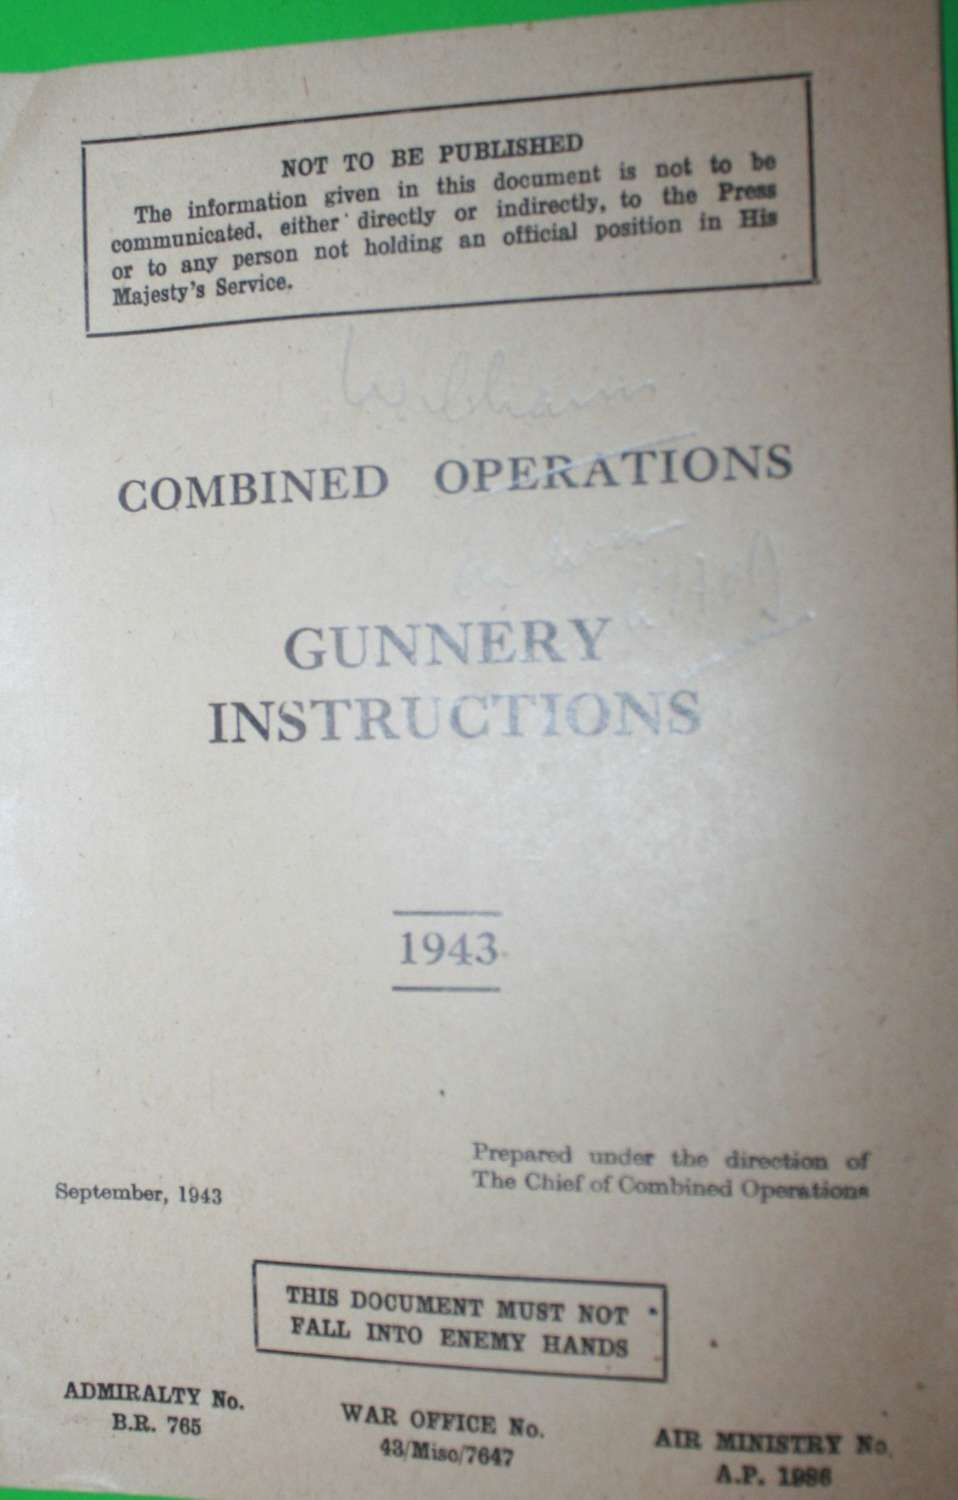 A COMBINED OPERATIONS MANUAL GUNNERY INSTRUCTIONS PAMPHLET